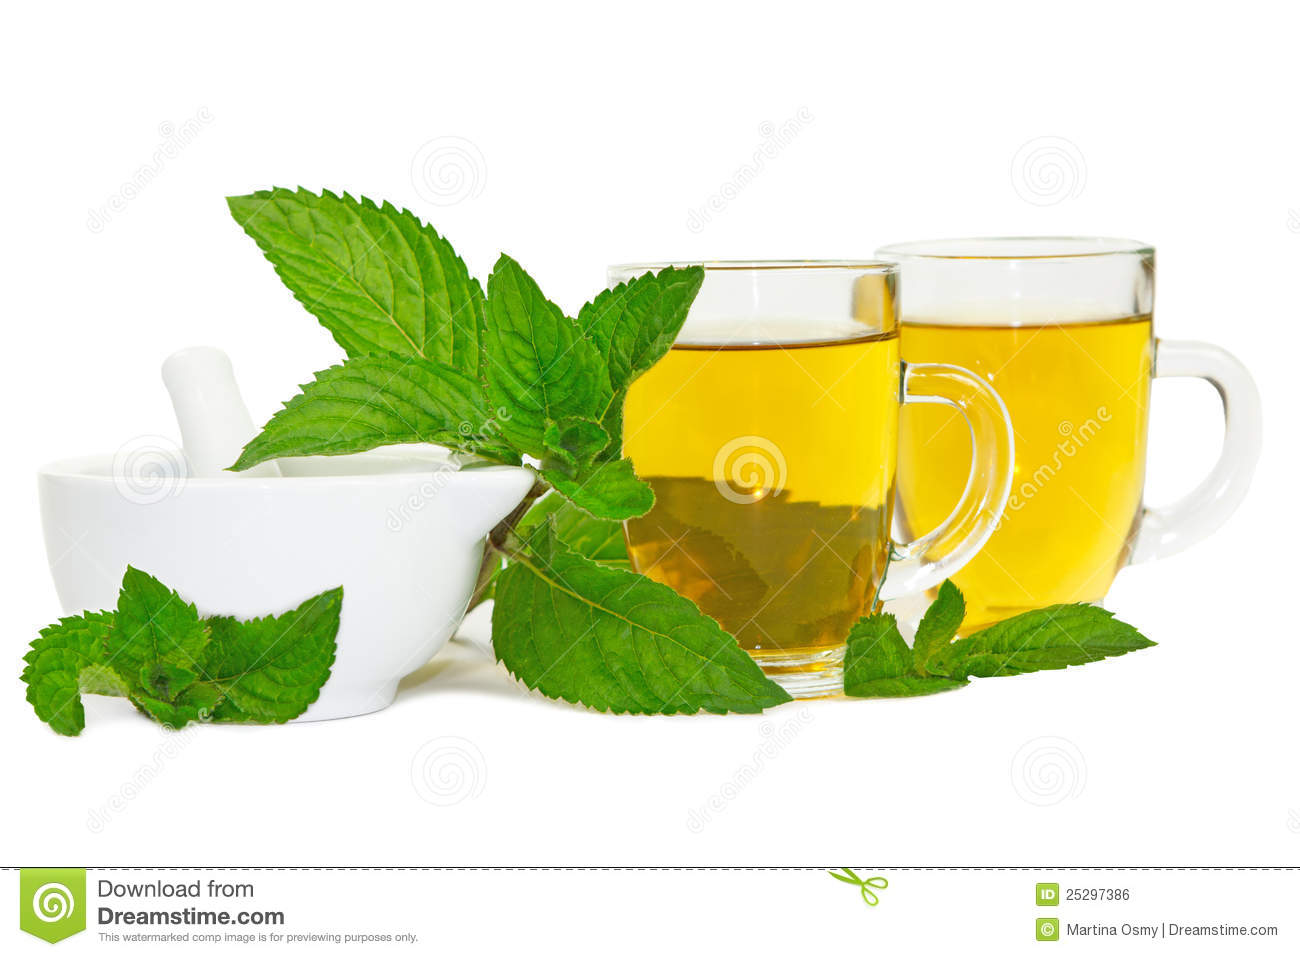 ... lemon balm leaves used to brew healthy refreshing mint or lemon balm